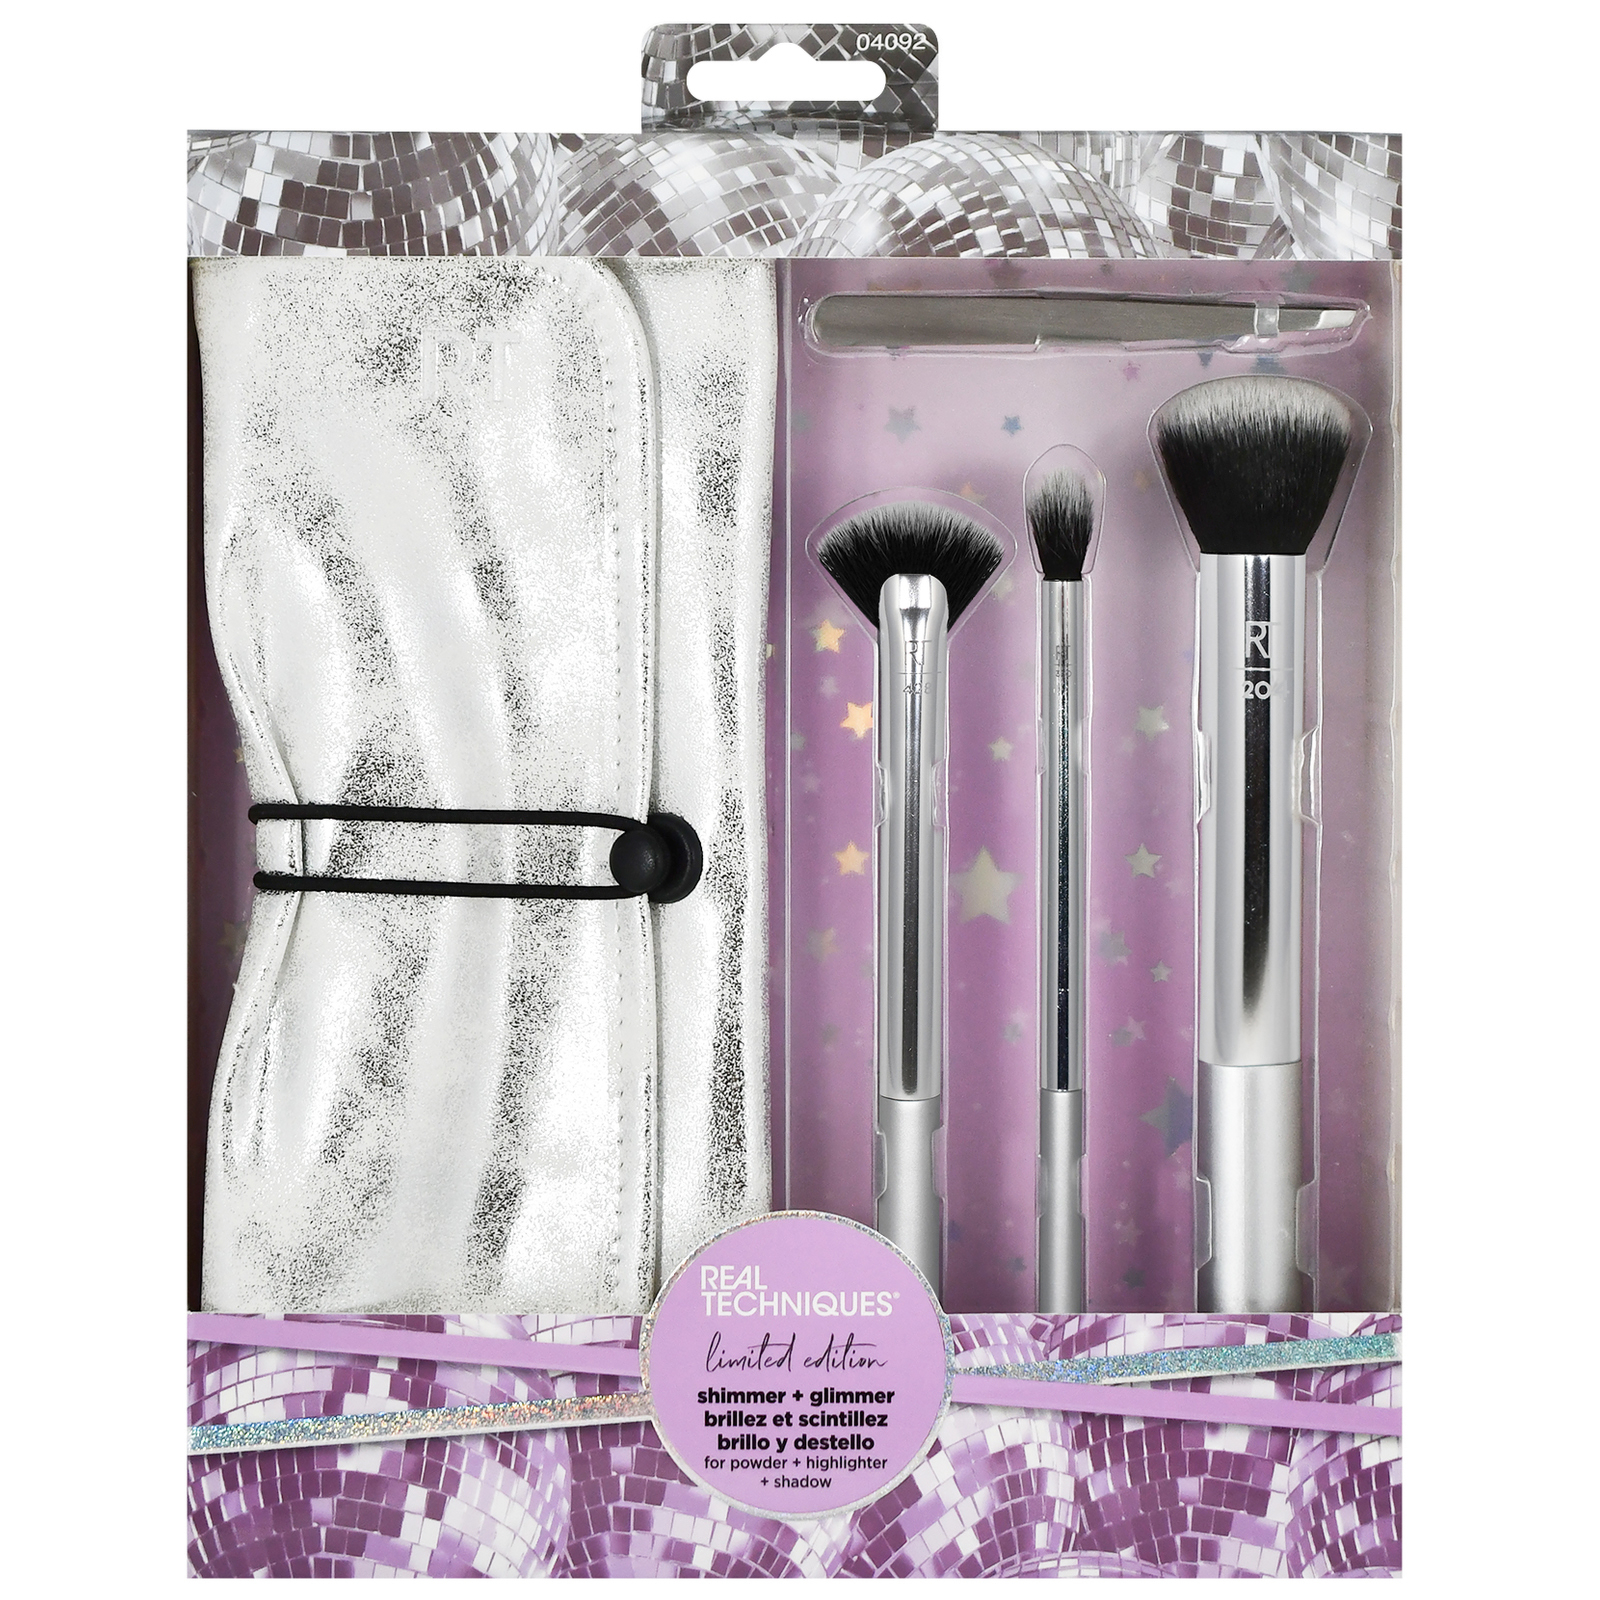 Real Techniques Gifts and Sets Limited Edition Shimmer & Glimmer